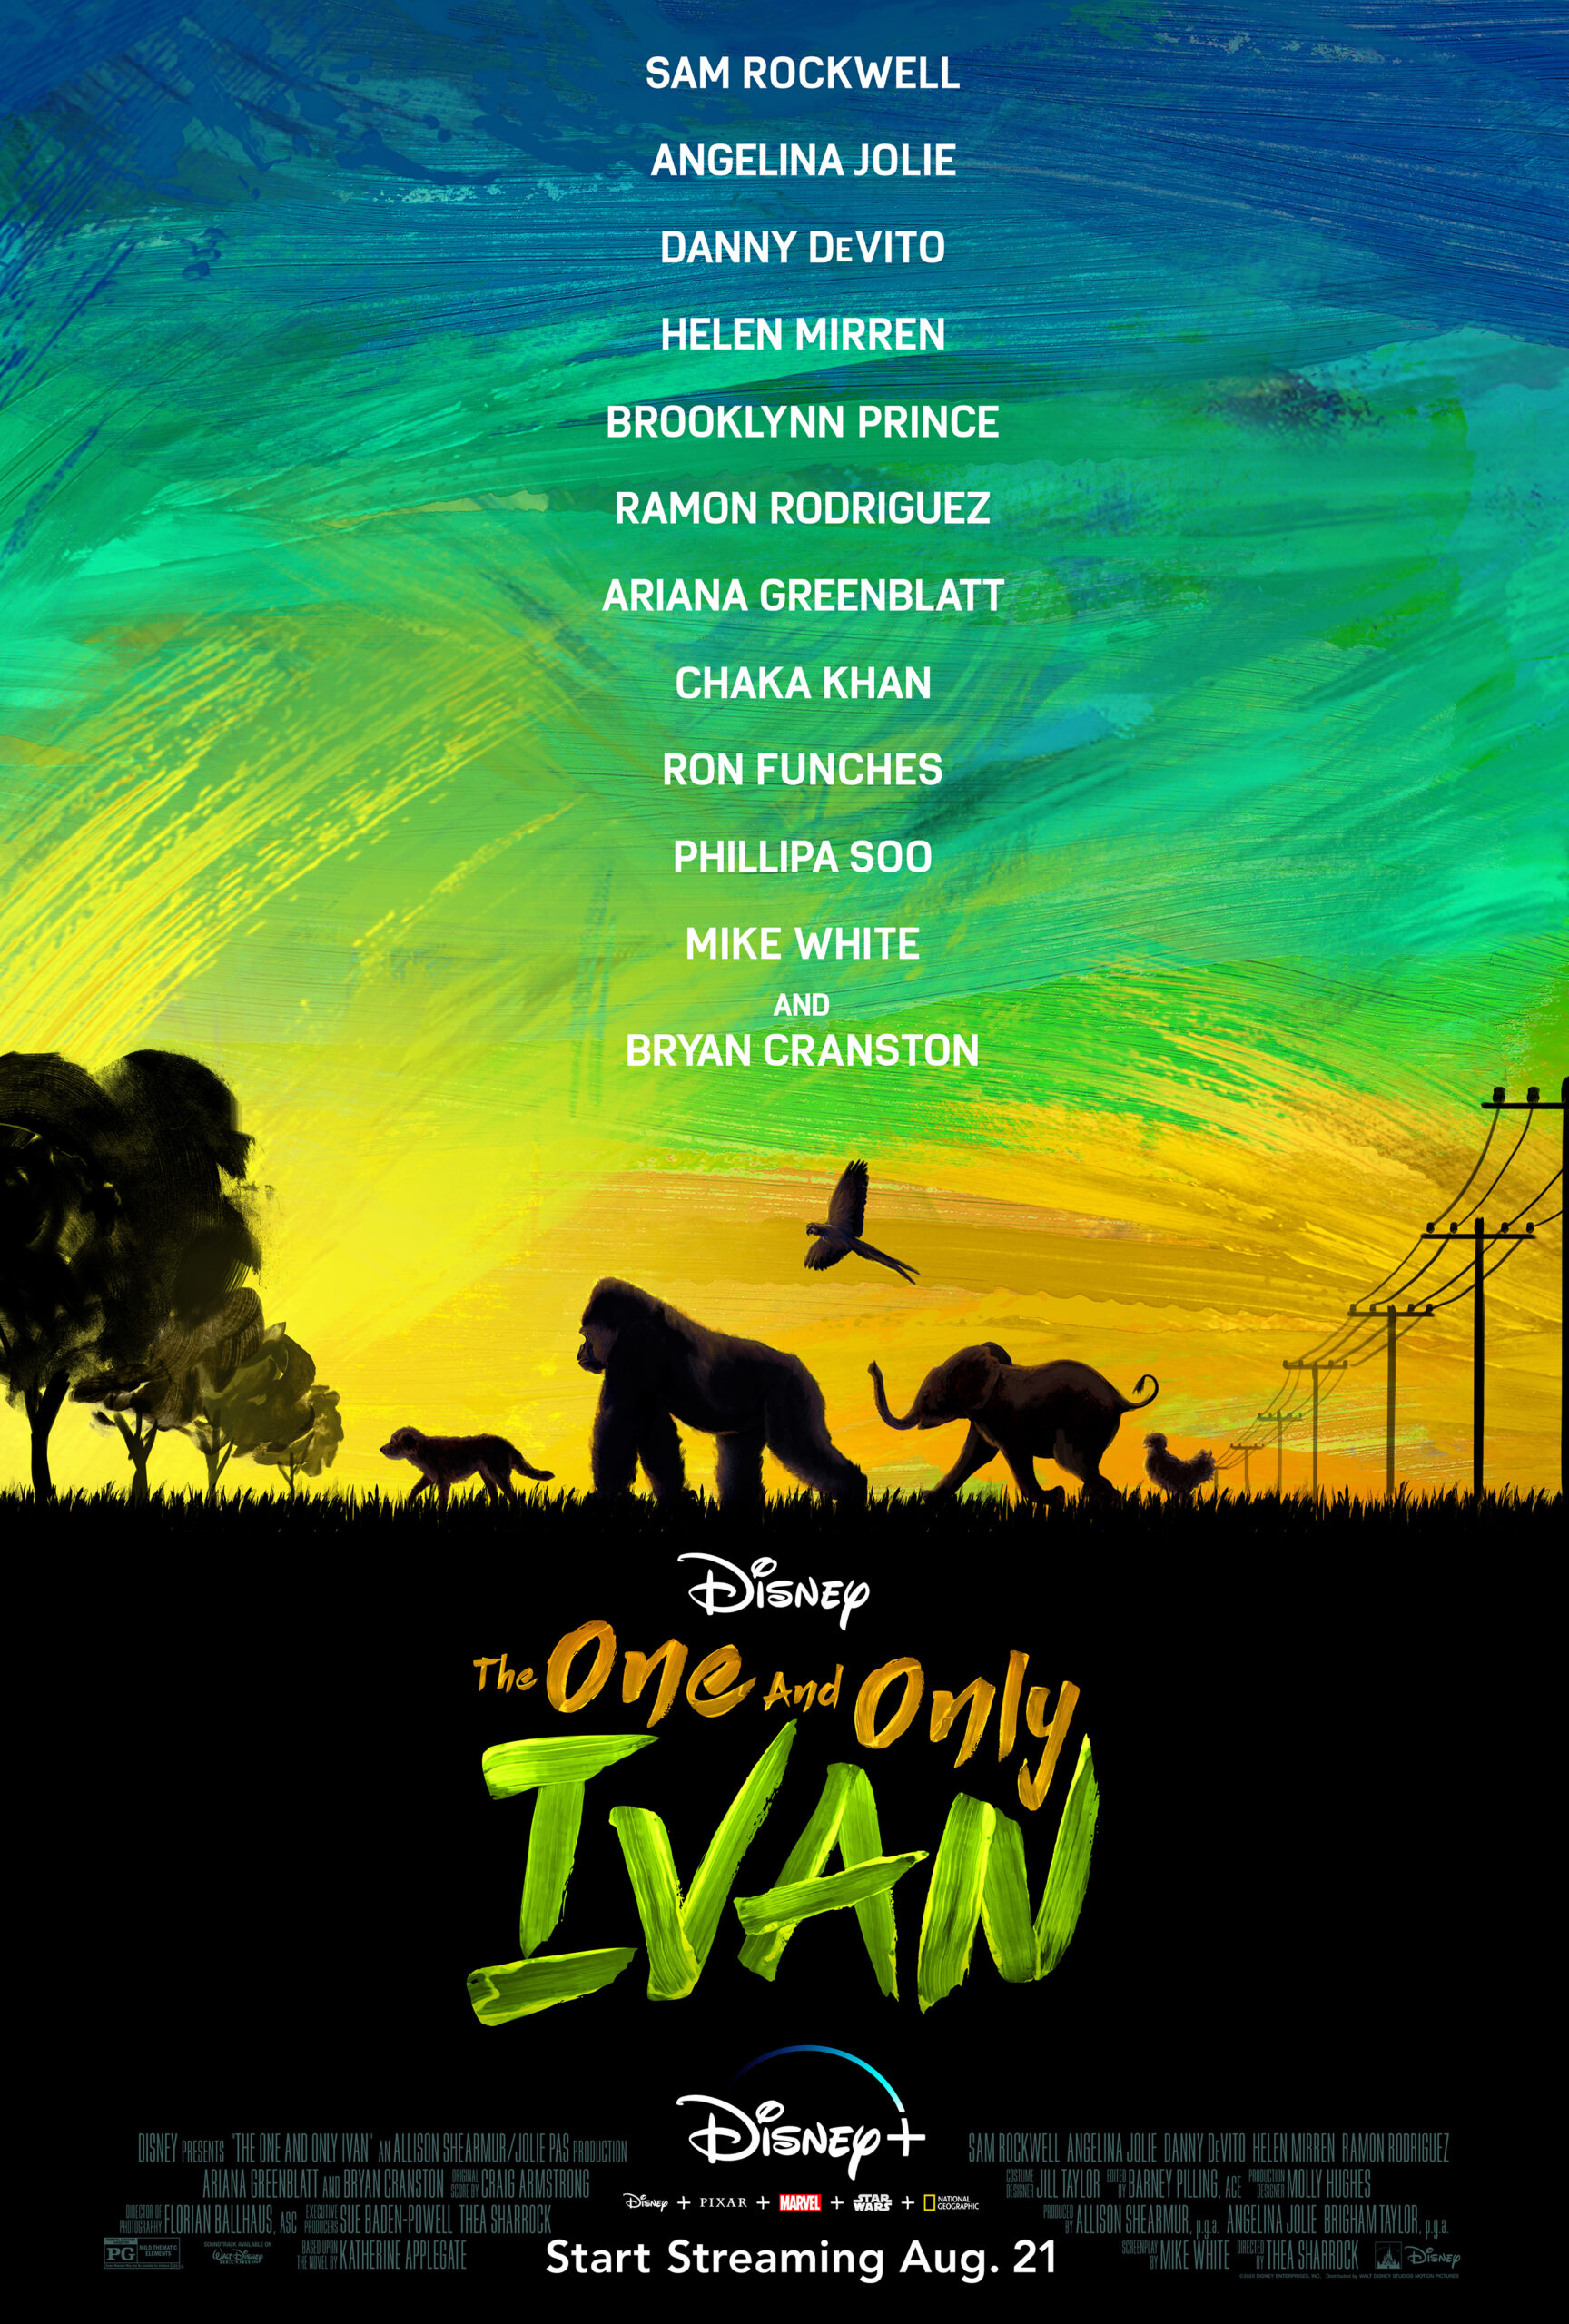 Looking for a The One and Only Ivan Movie Review that will help determine if your kids will love the movie? This is my mom perspective on the latest Disney Plus release.